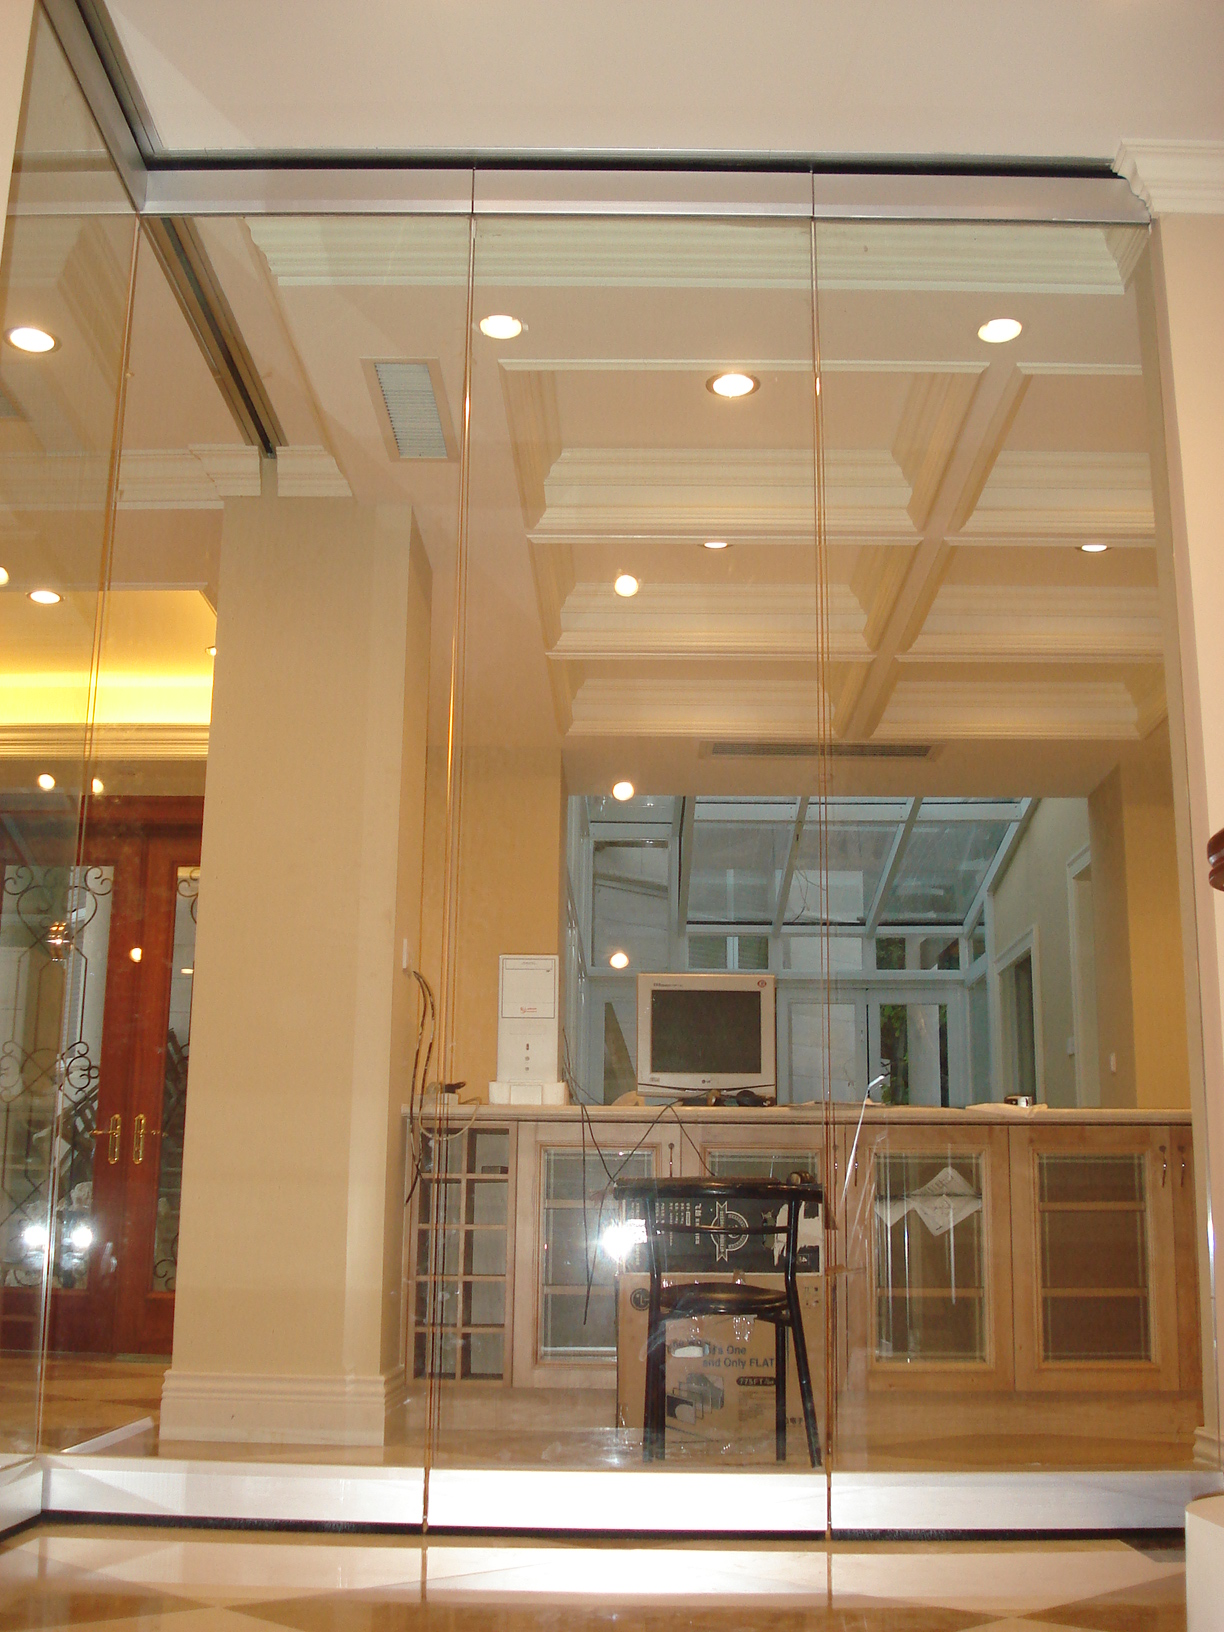 Decorative soundproof movable partition walls sliding partition for hotel banquet hall